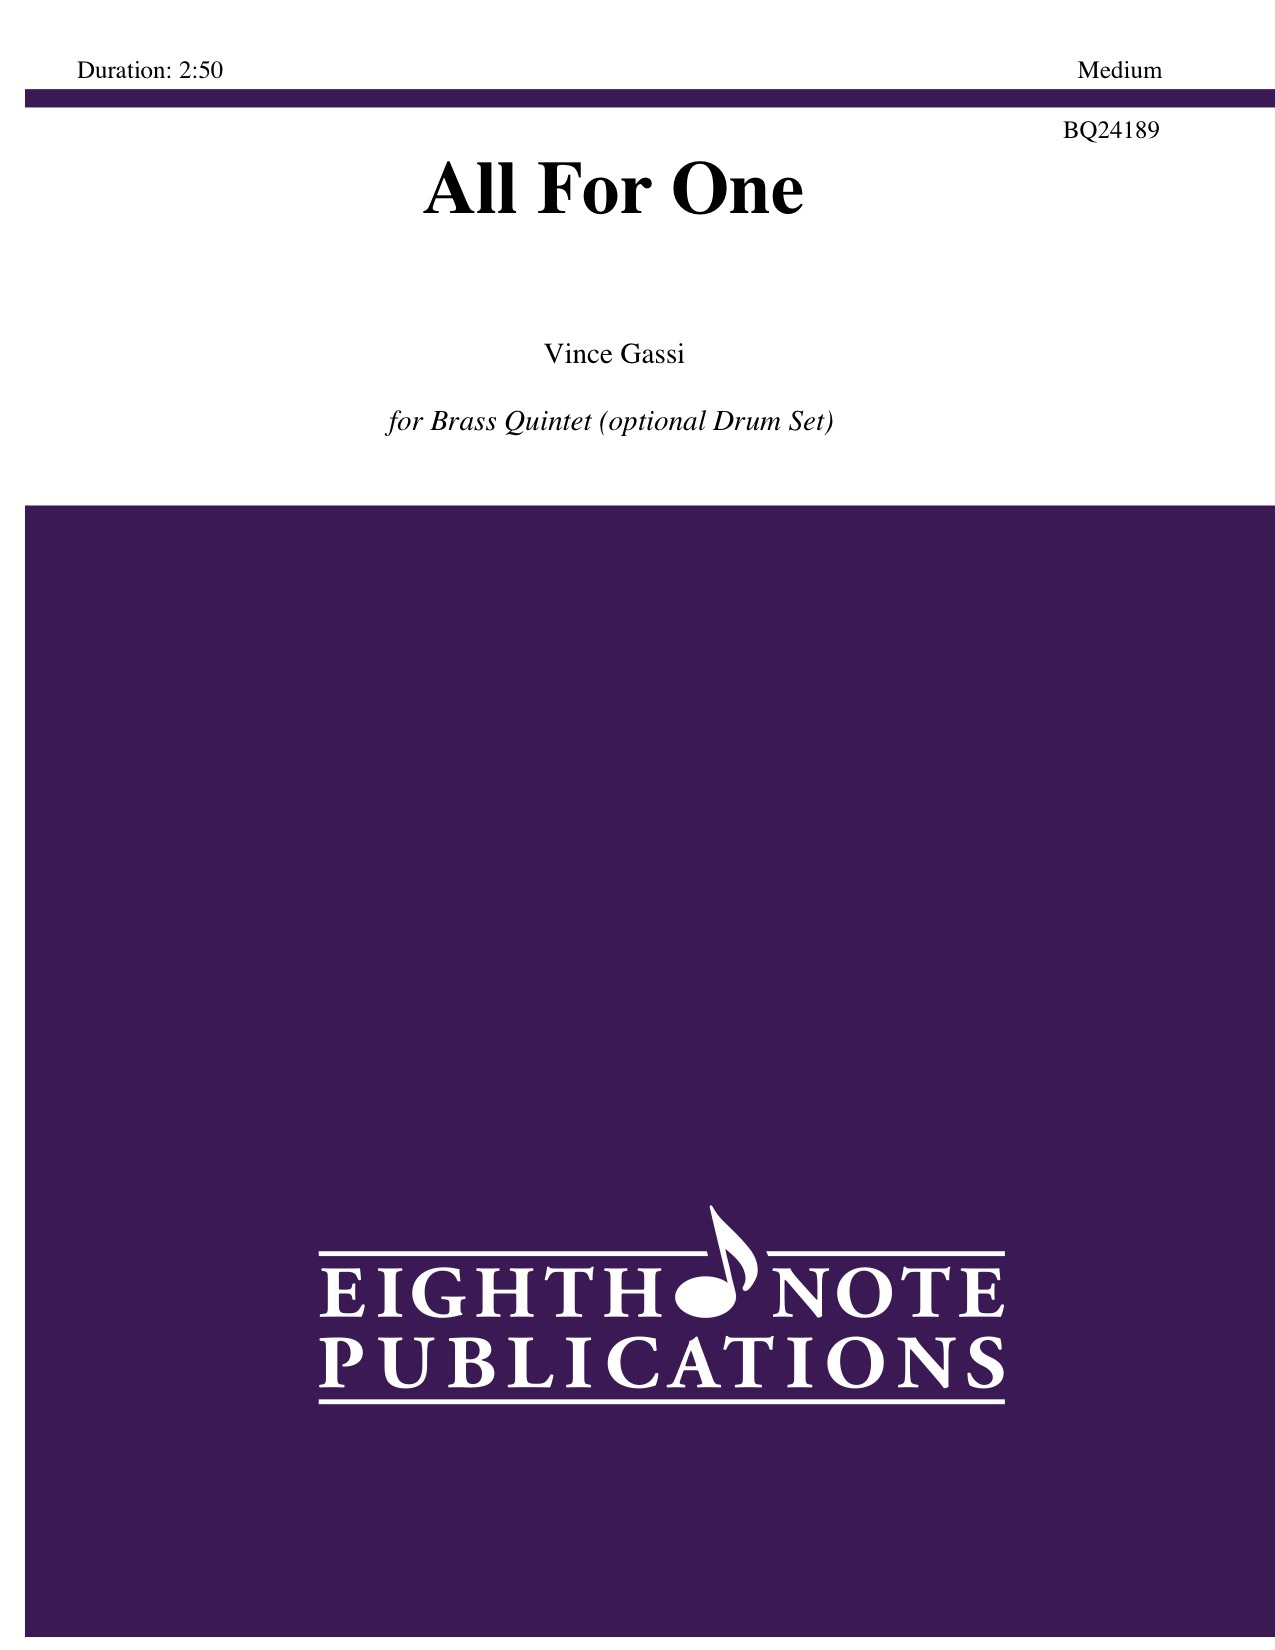 All For One   - Vince Gassi